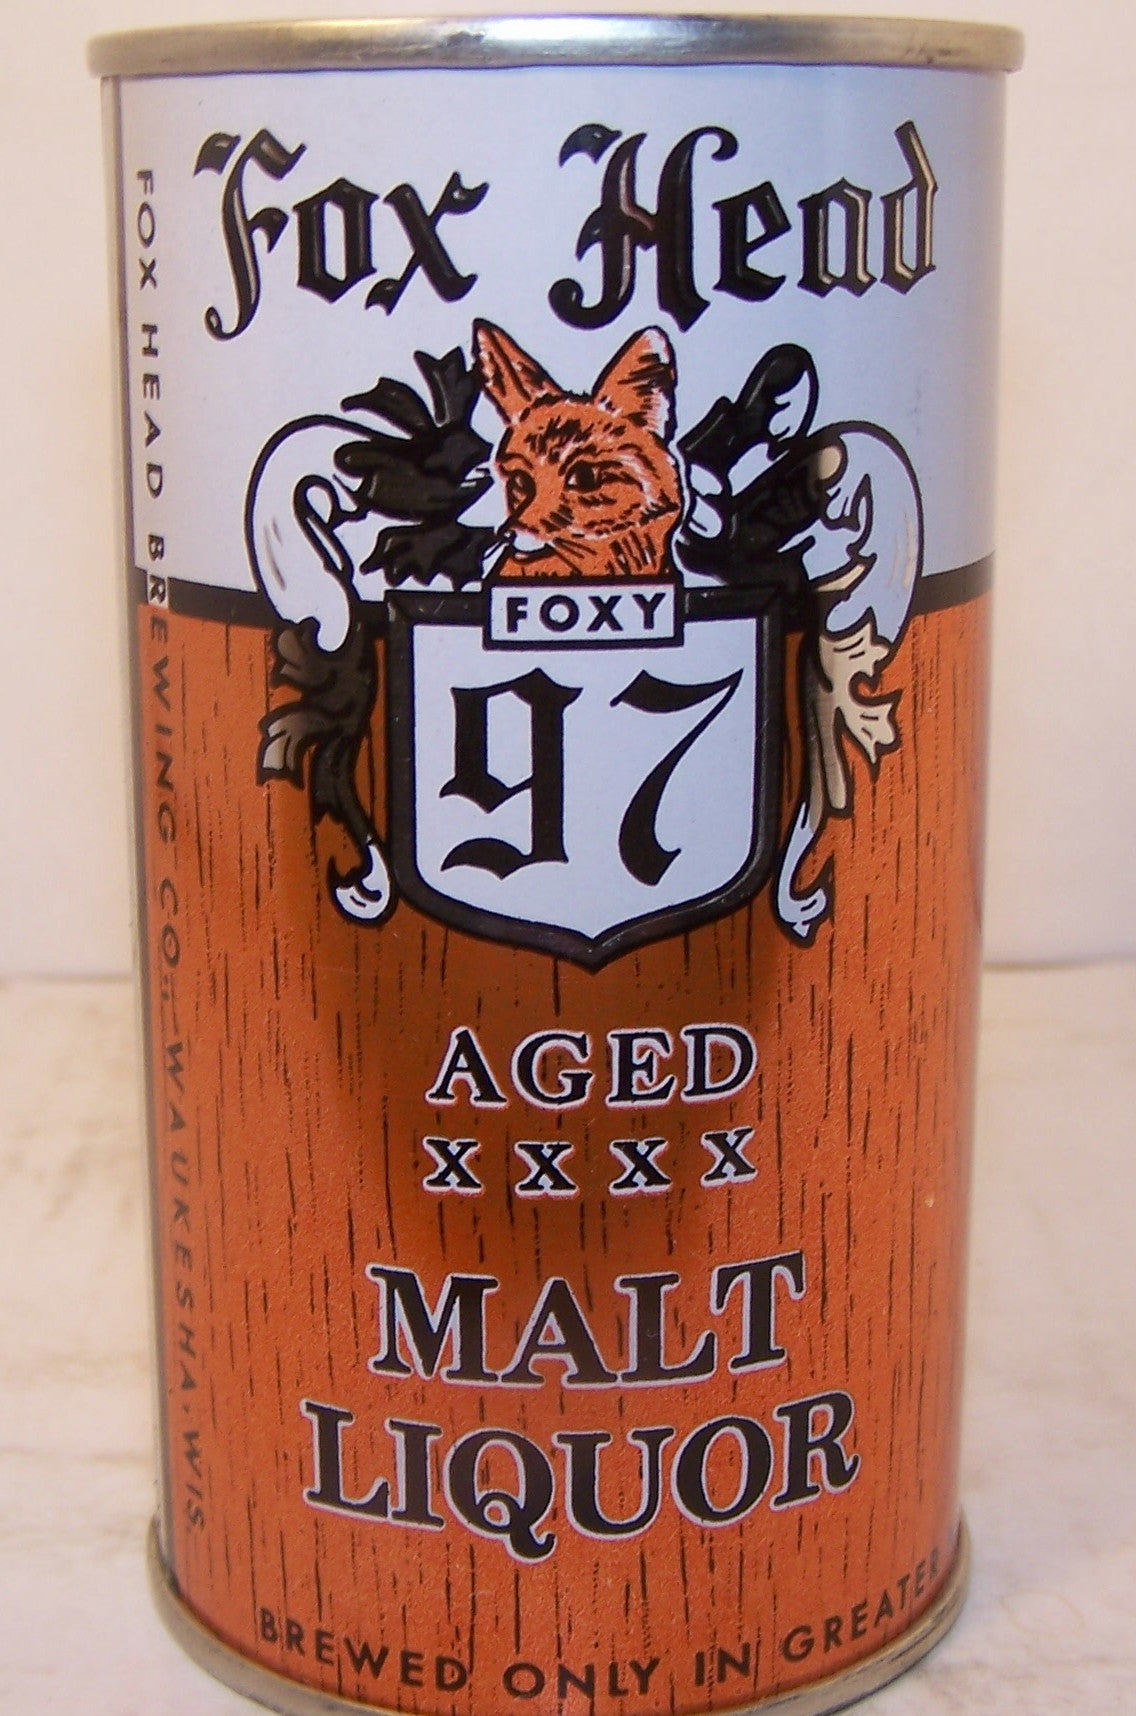 Fox Head 97 Aged Malt Liquor, USBC Like 66-18 Grade A1+ Sold 5/3/15